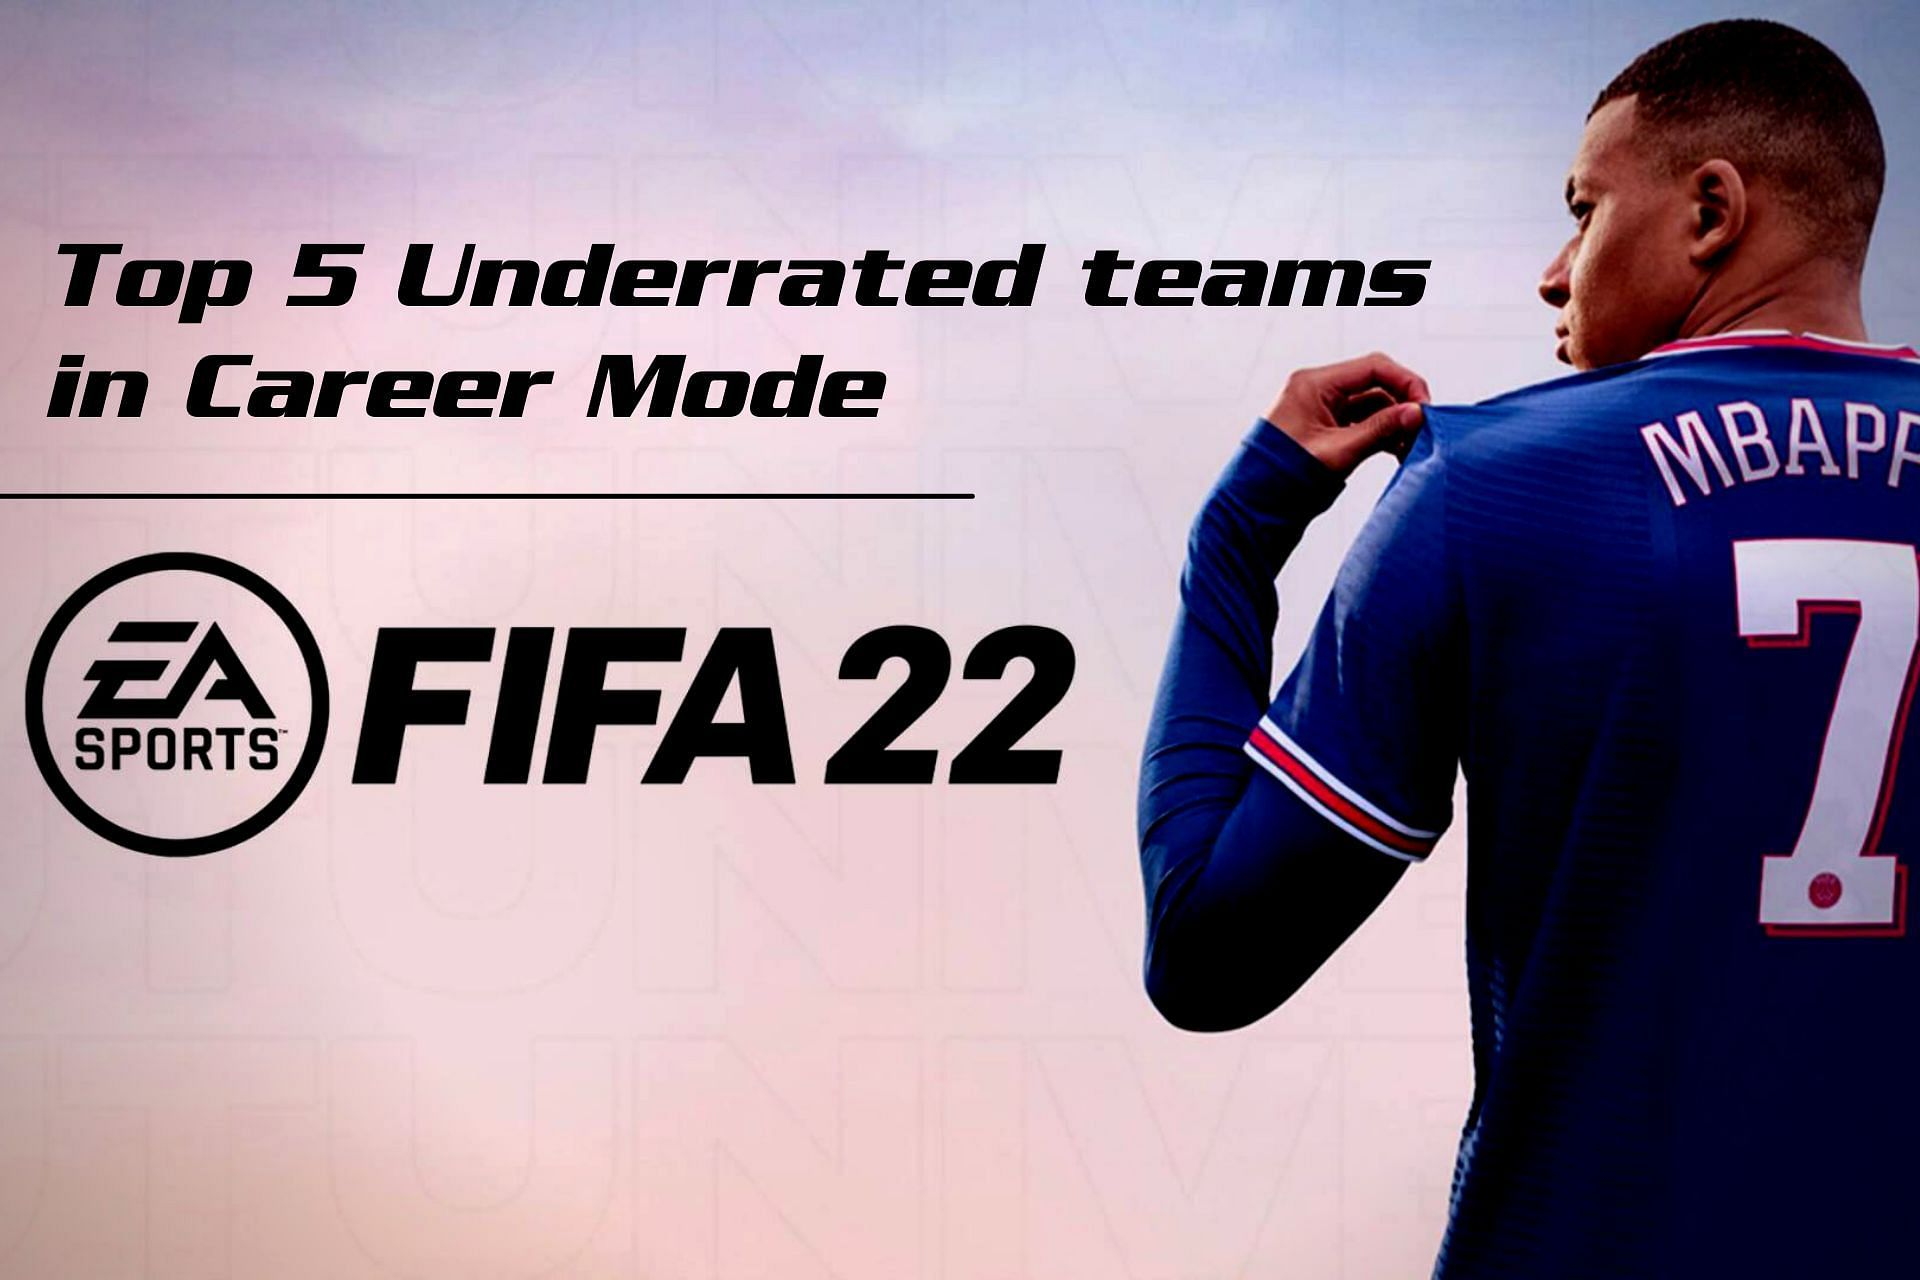 Who's the most underrated team in FIFA 22 Career Mode? (Image via Sportskeeda)